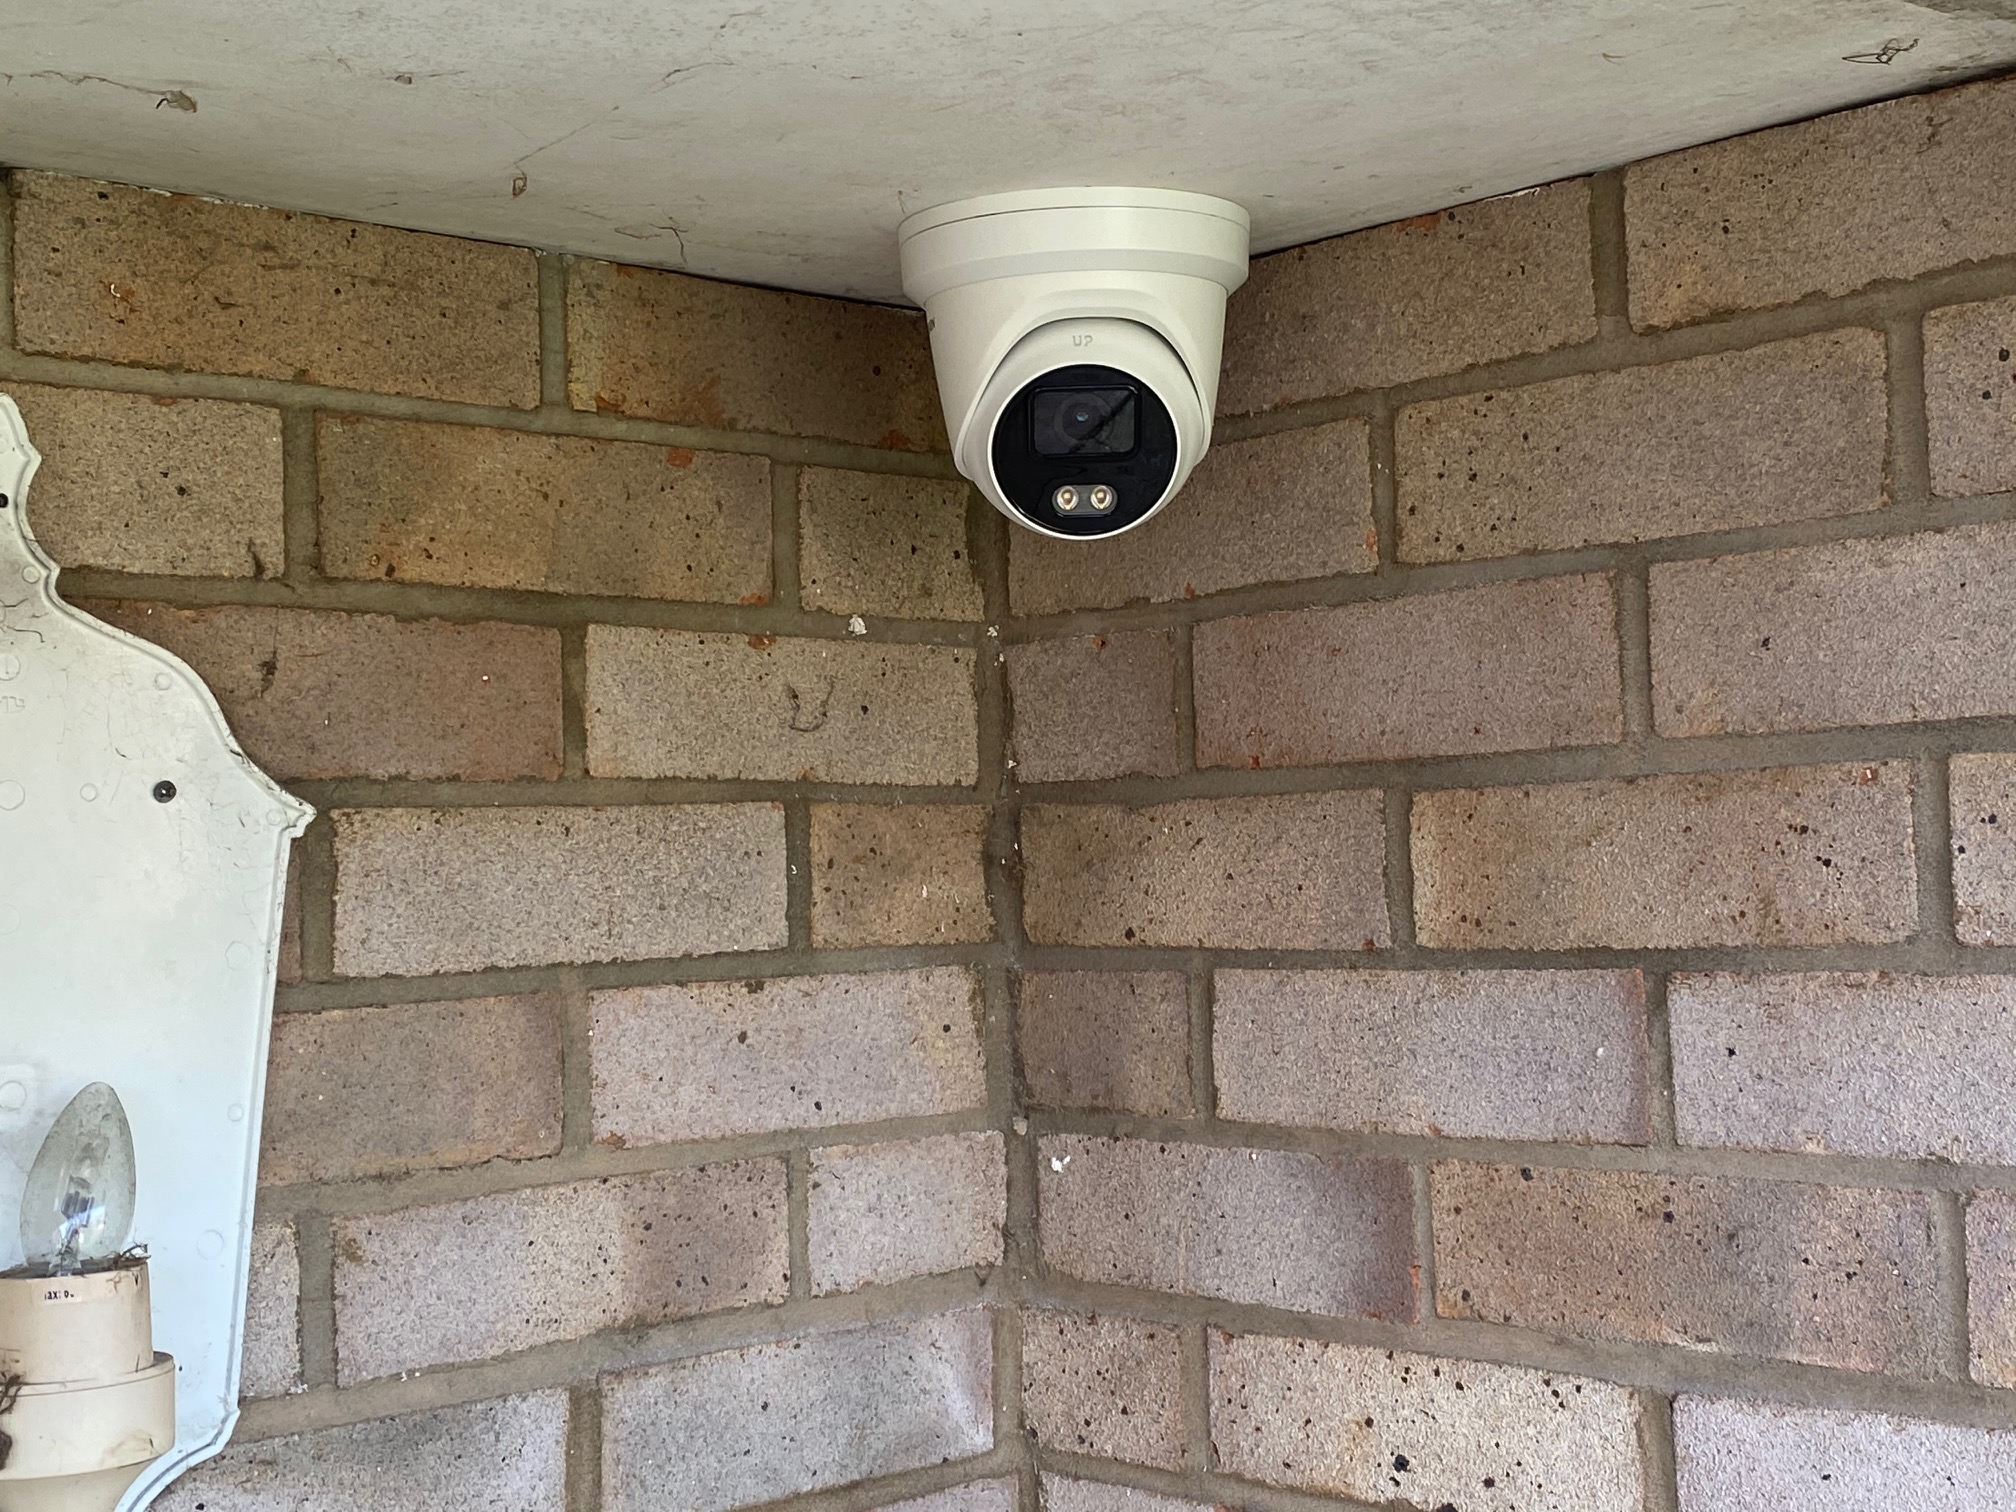 cctv installation west kingsdown